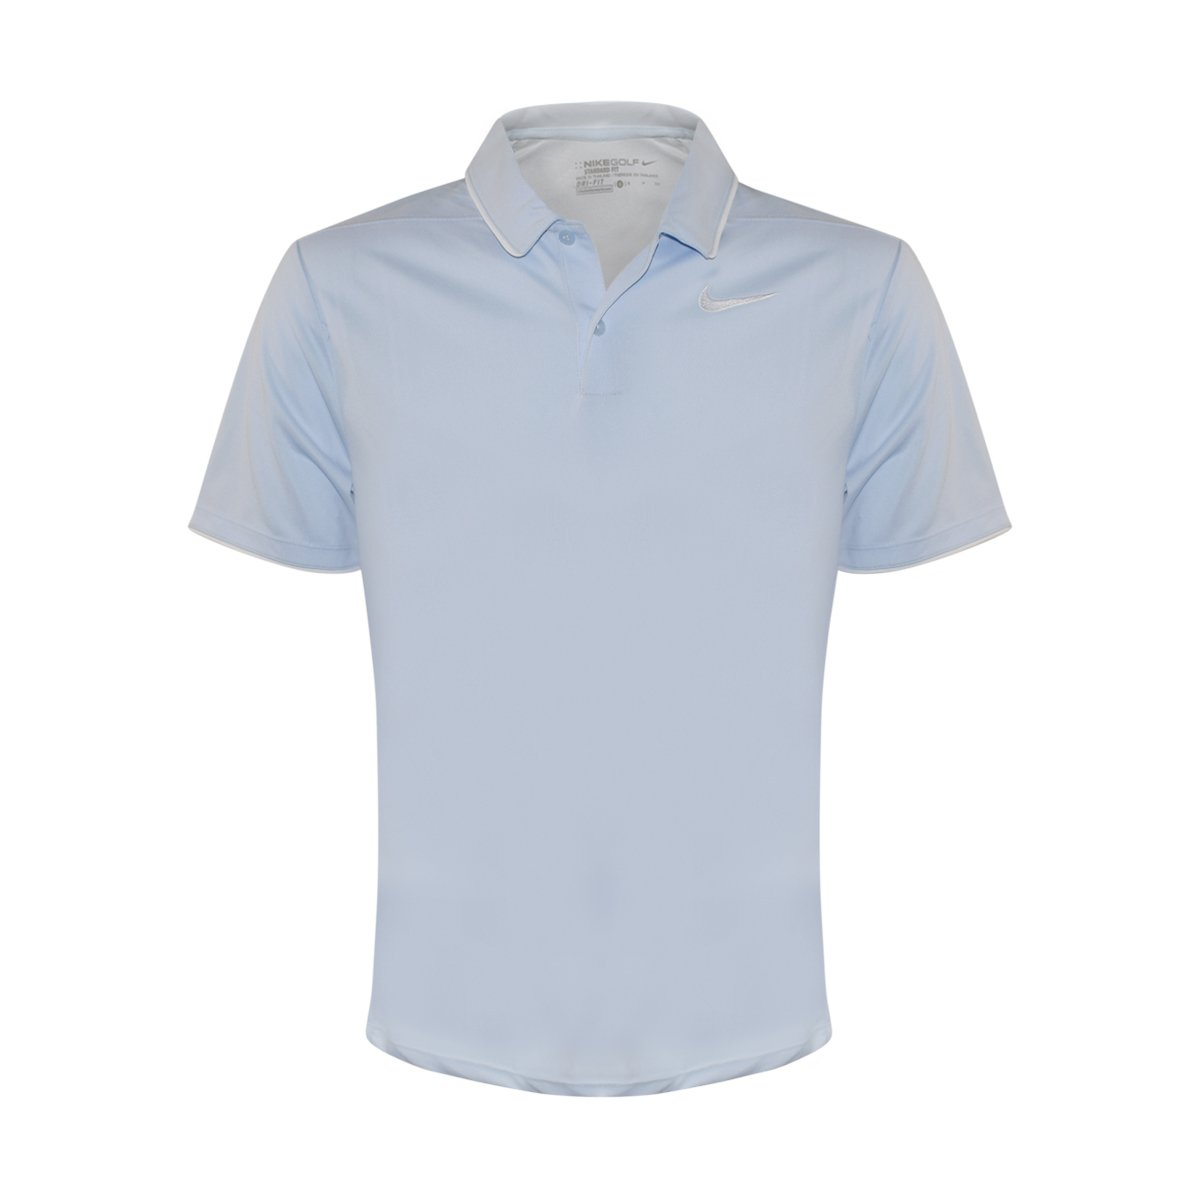 Nike Men's Dri-Fit Victory Solid Polo Light Blue 904476 466 (s)